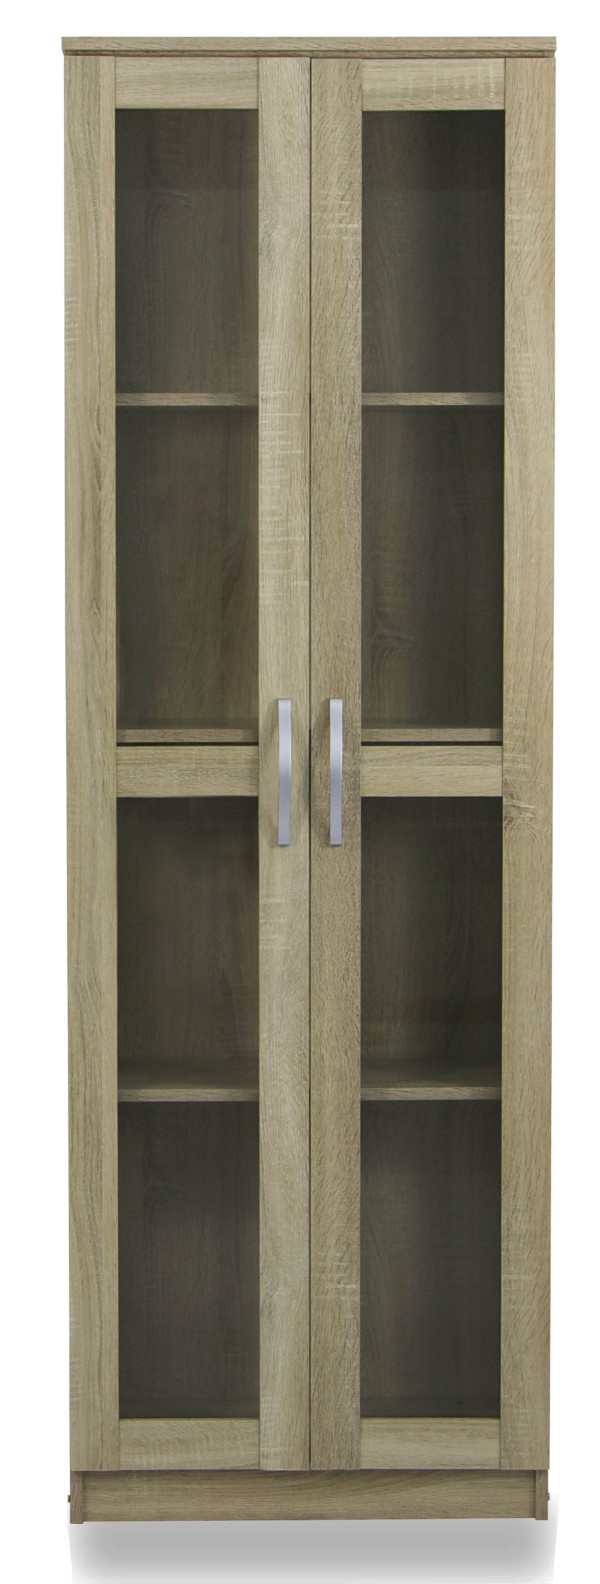 Clyde Storage Cabinet in Sonoma Oak